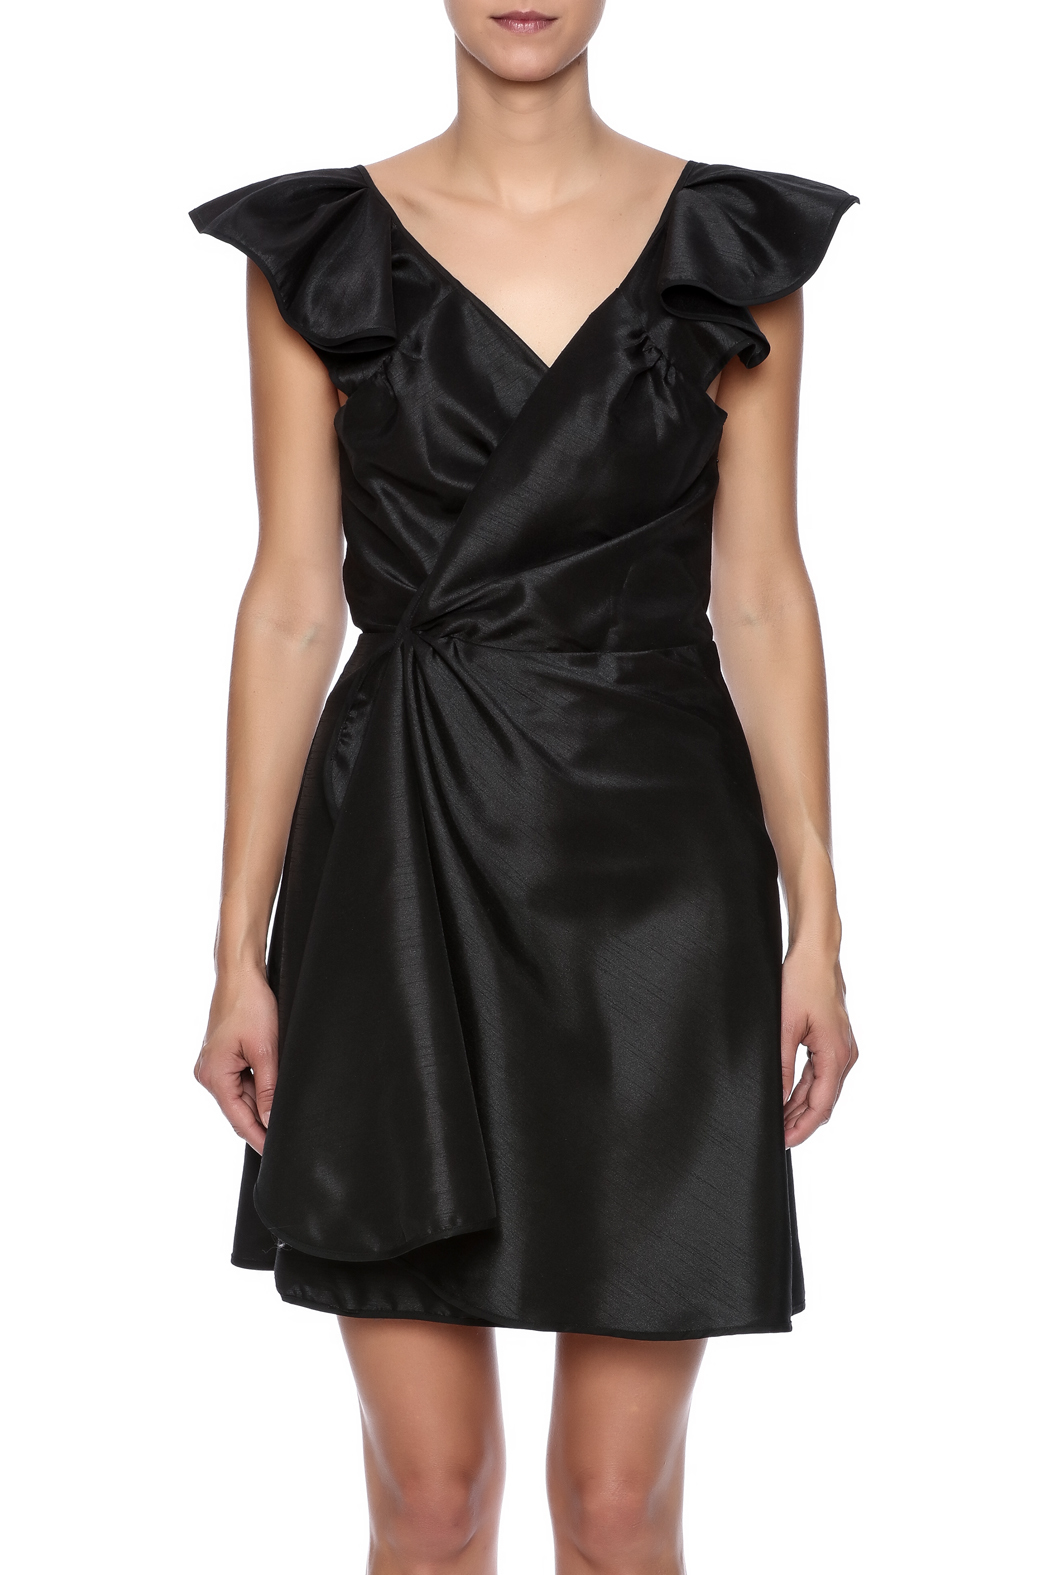 Stephanie D Couture Ava Dress - Side Cropped Image